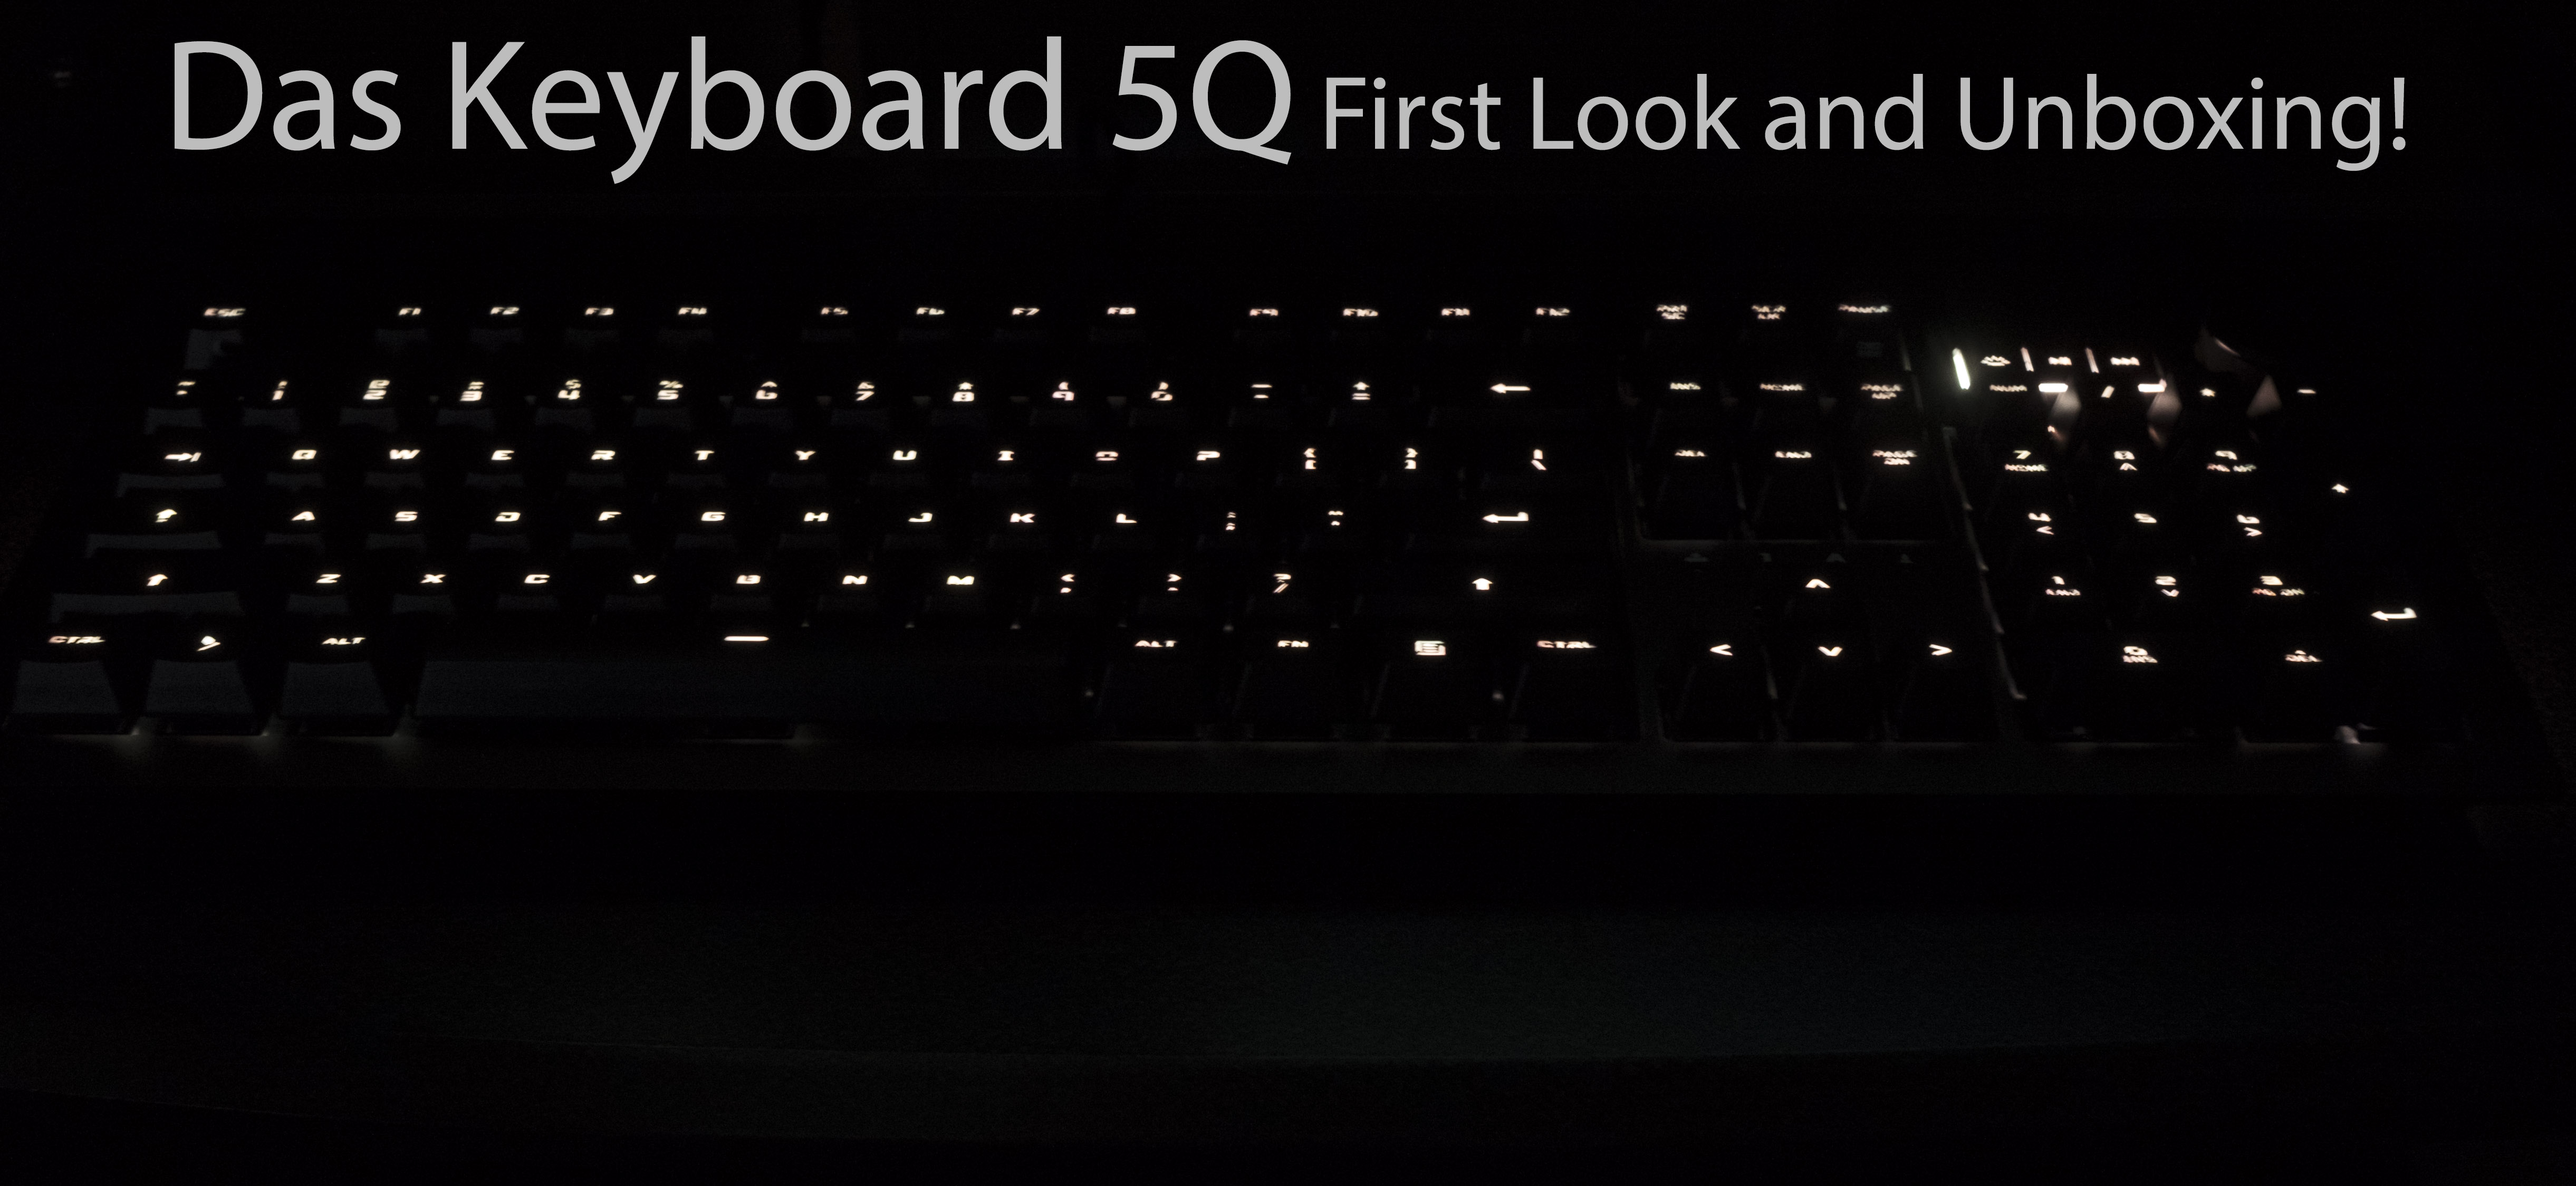 Das Keyboard 5Q unboxing and first look